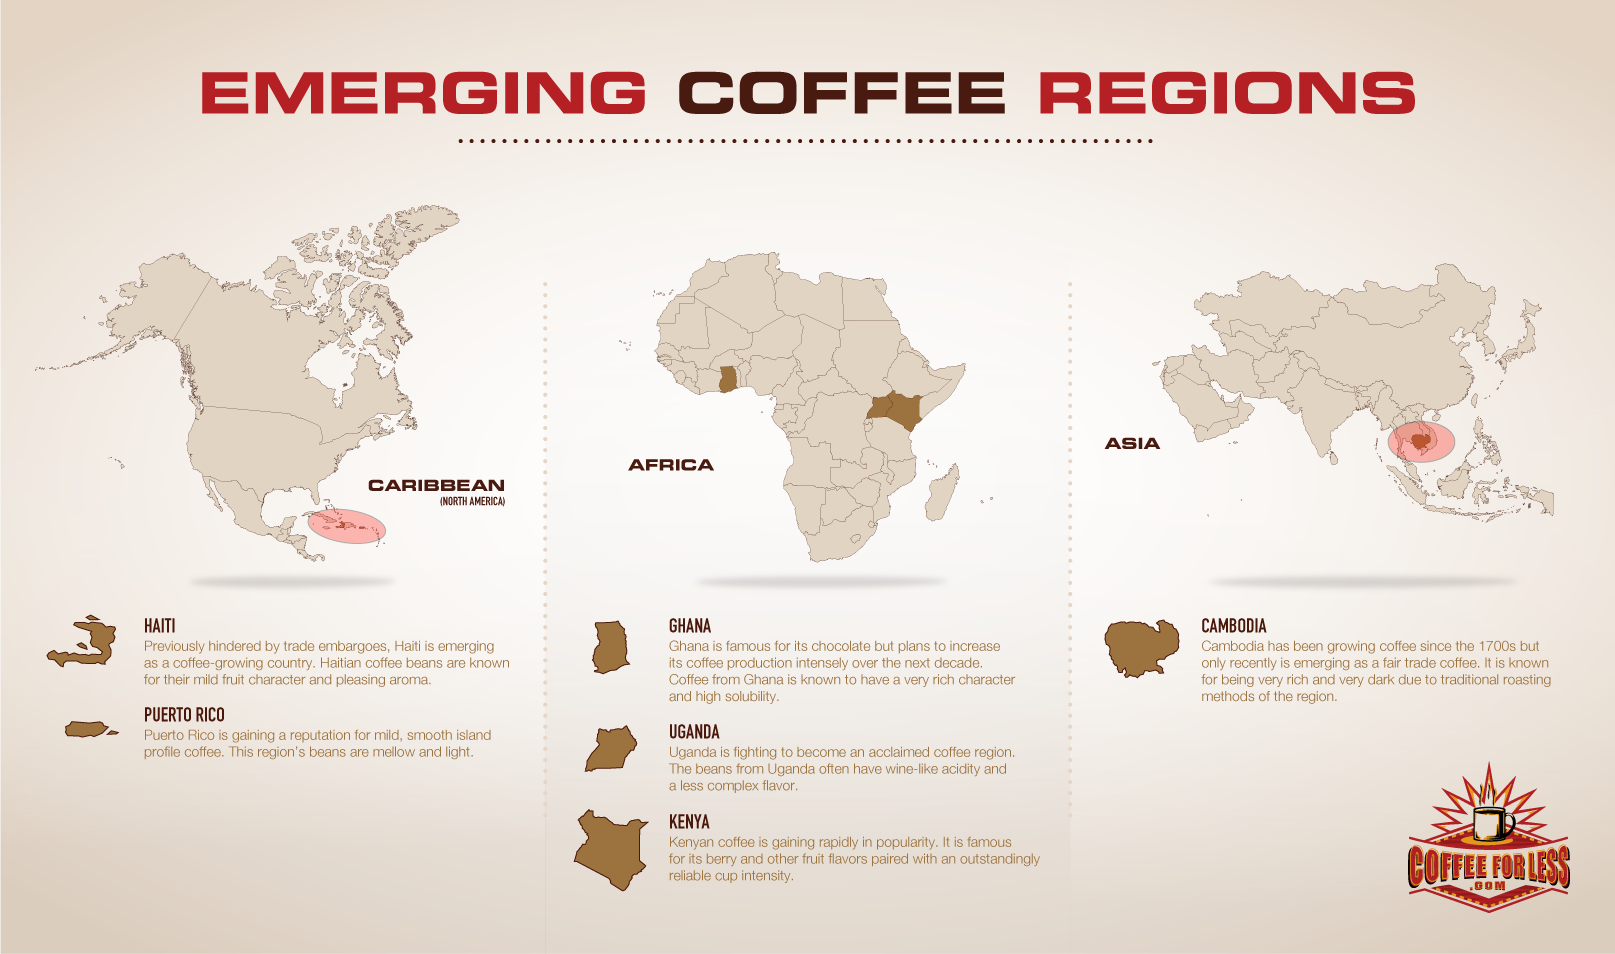 New up-and-coming coffee growing regions.